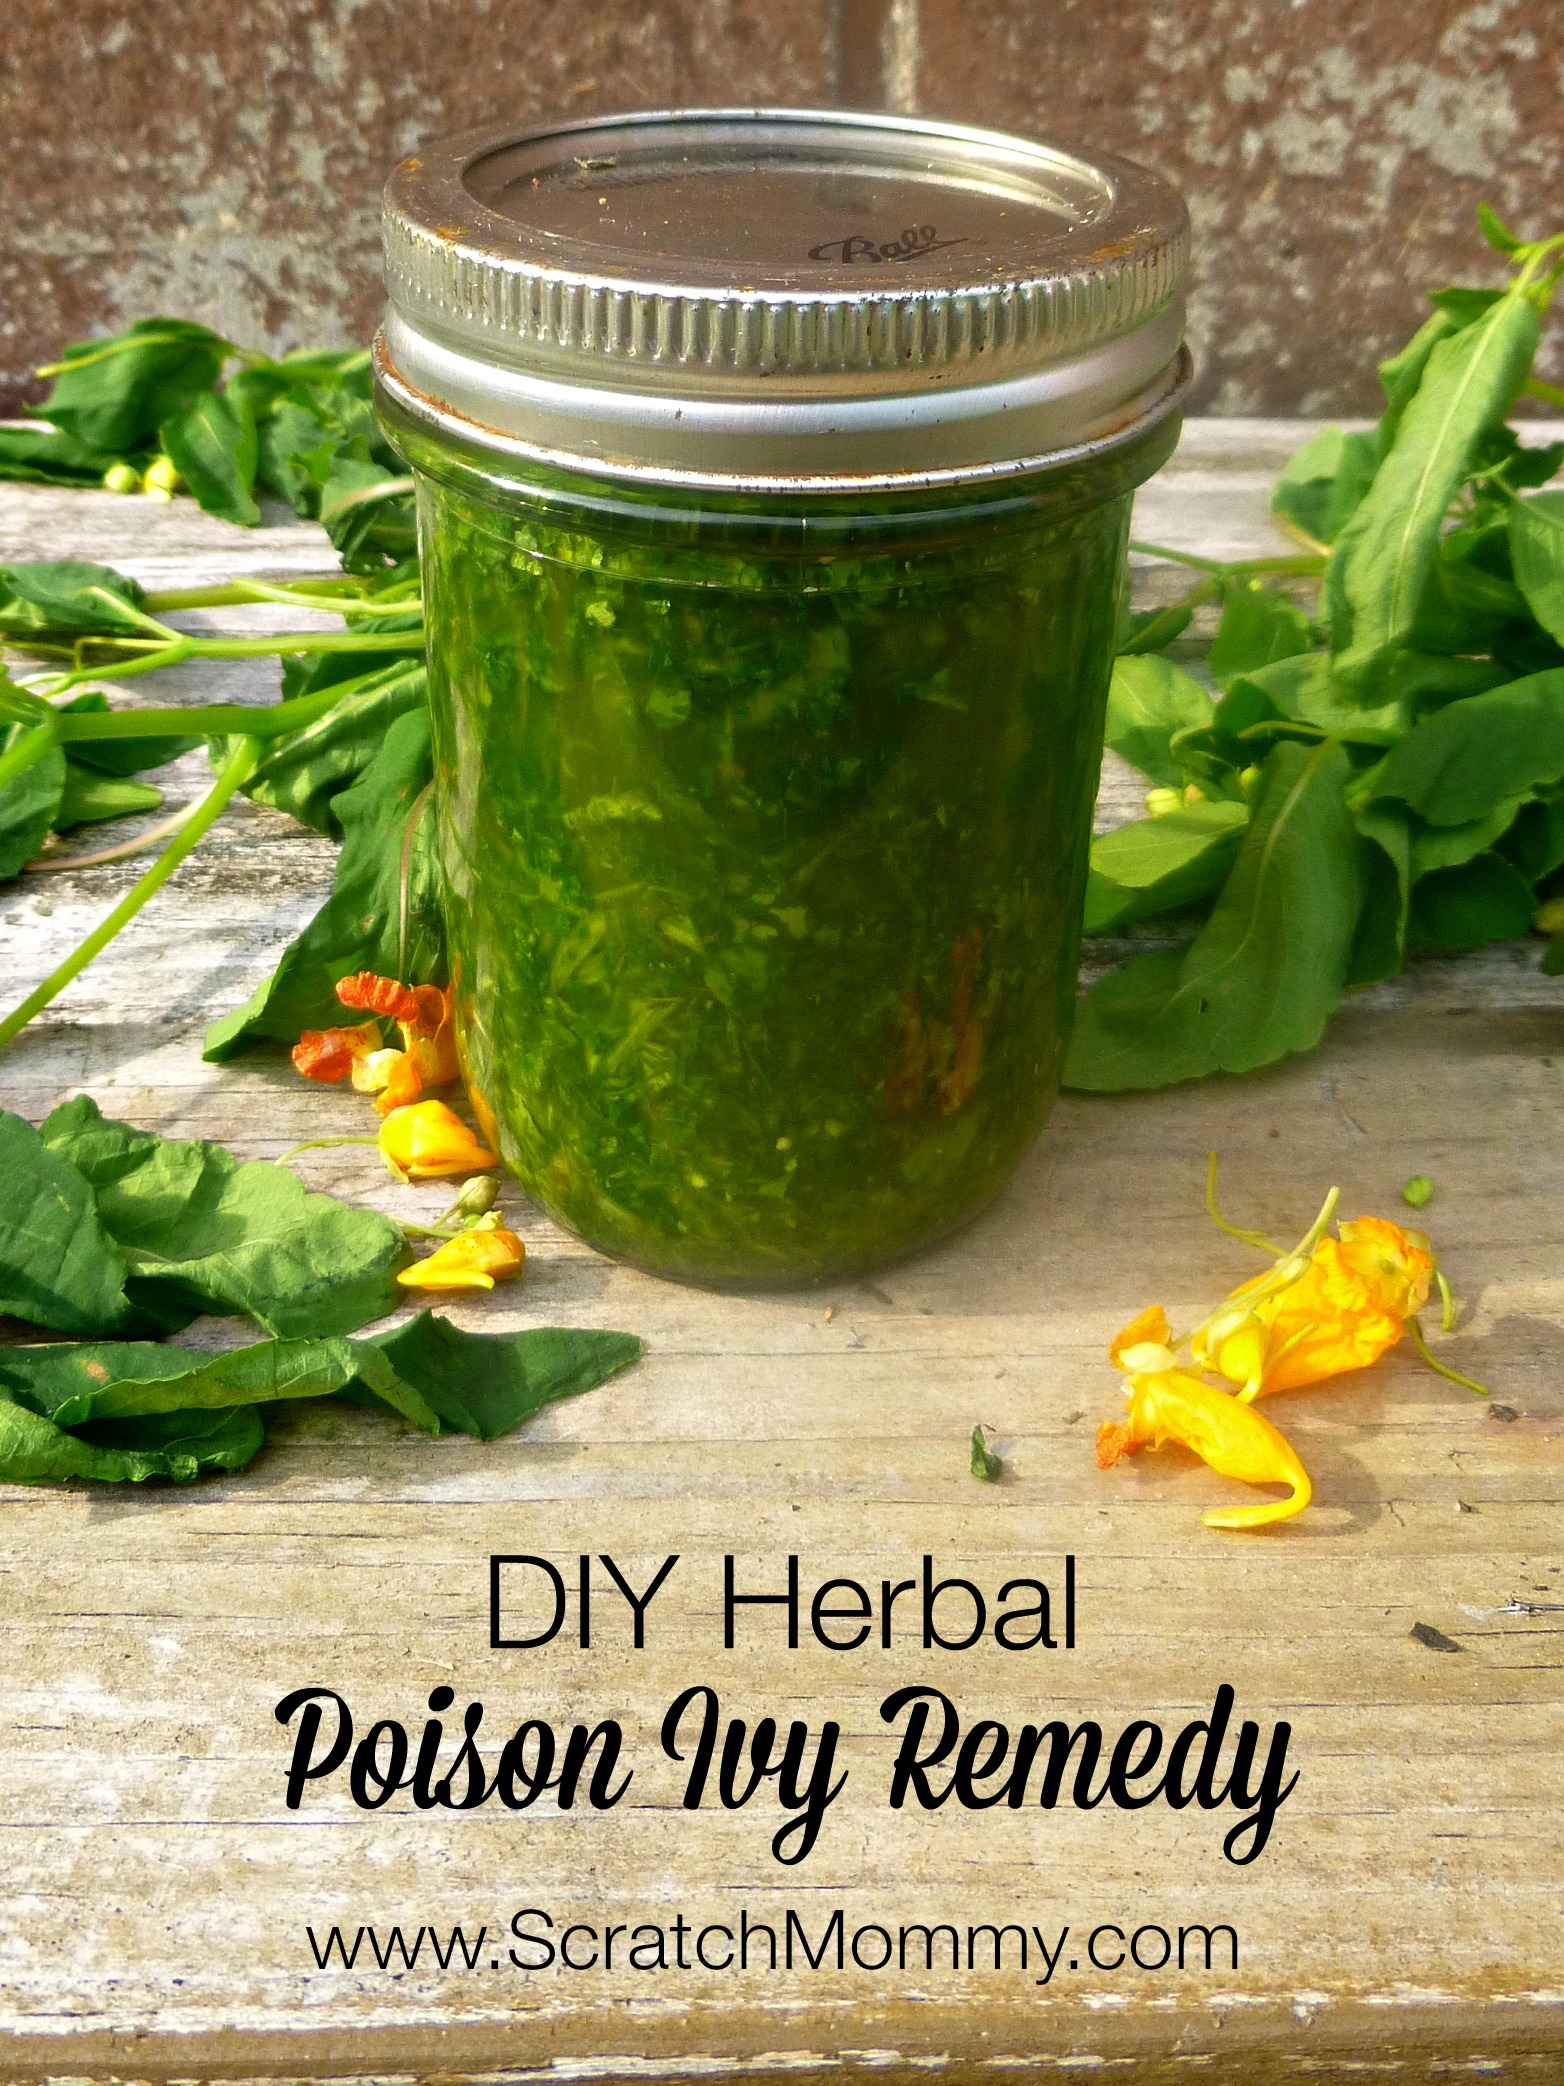 An Herbal Diy Poison Ivy Remedy Scratch Mommy Pronounce Skincare